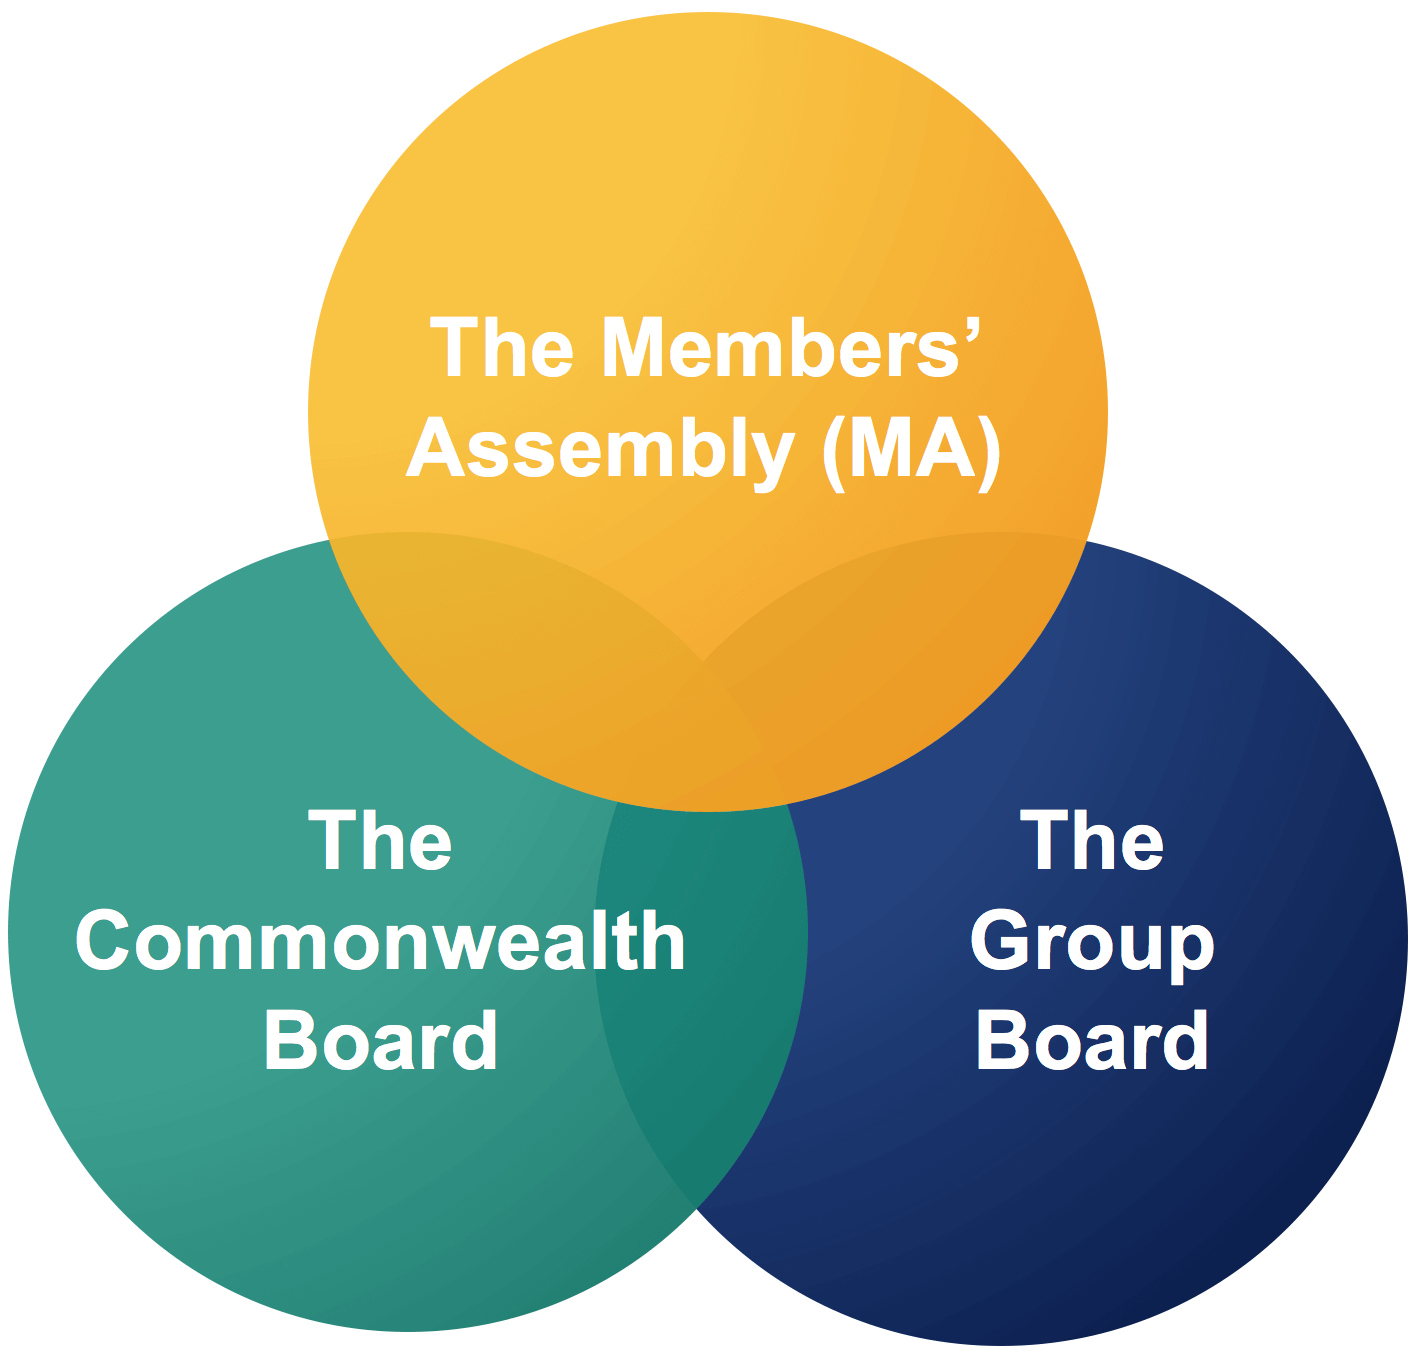 An image showing our governance structure